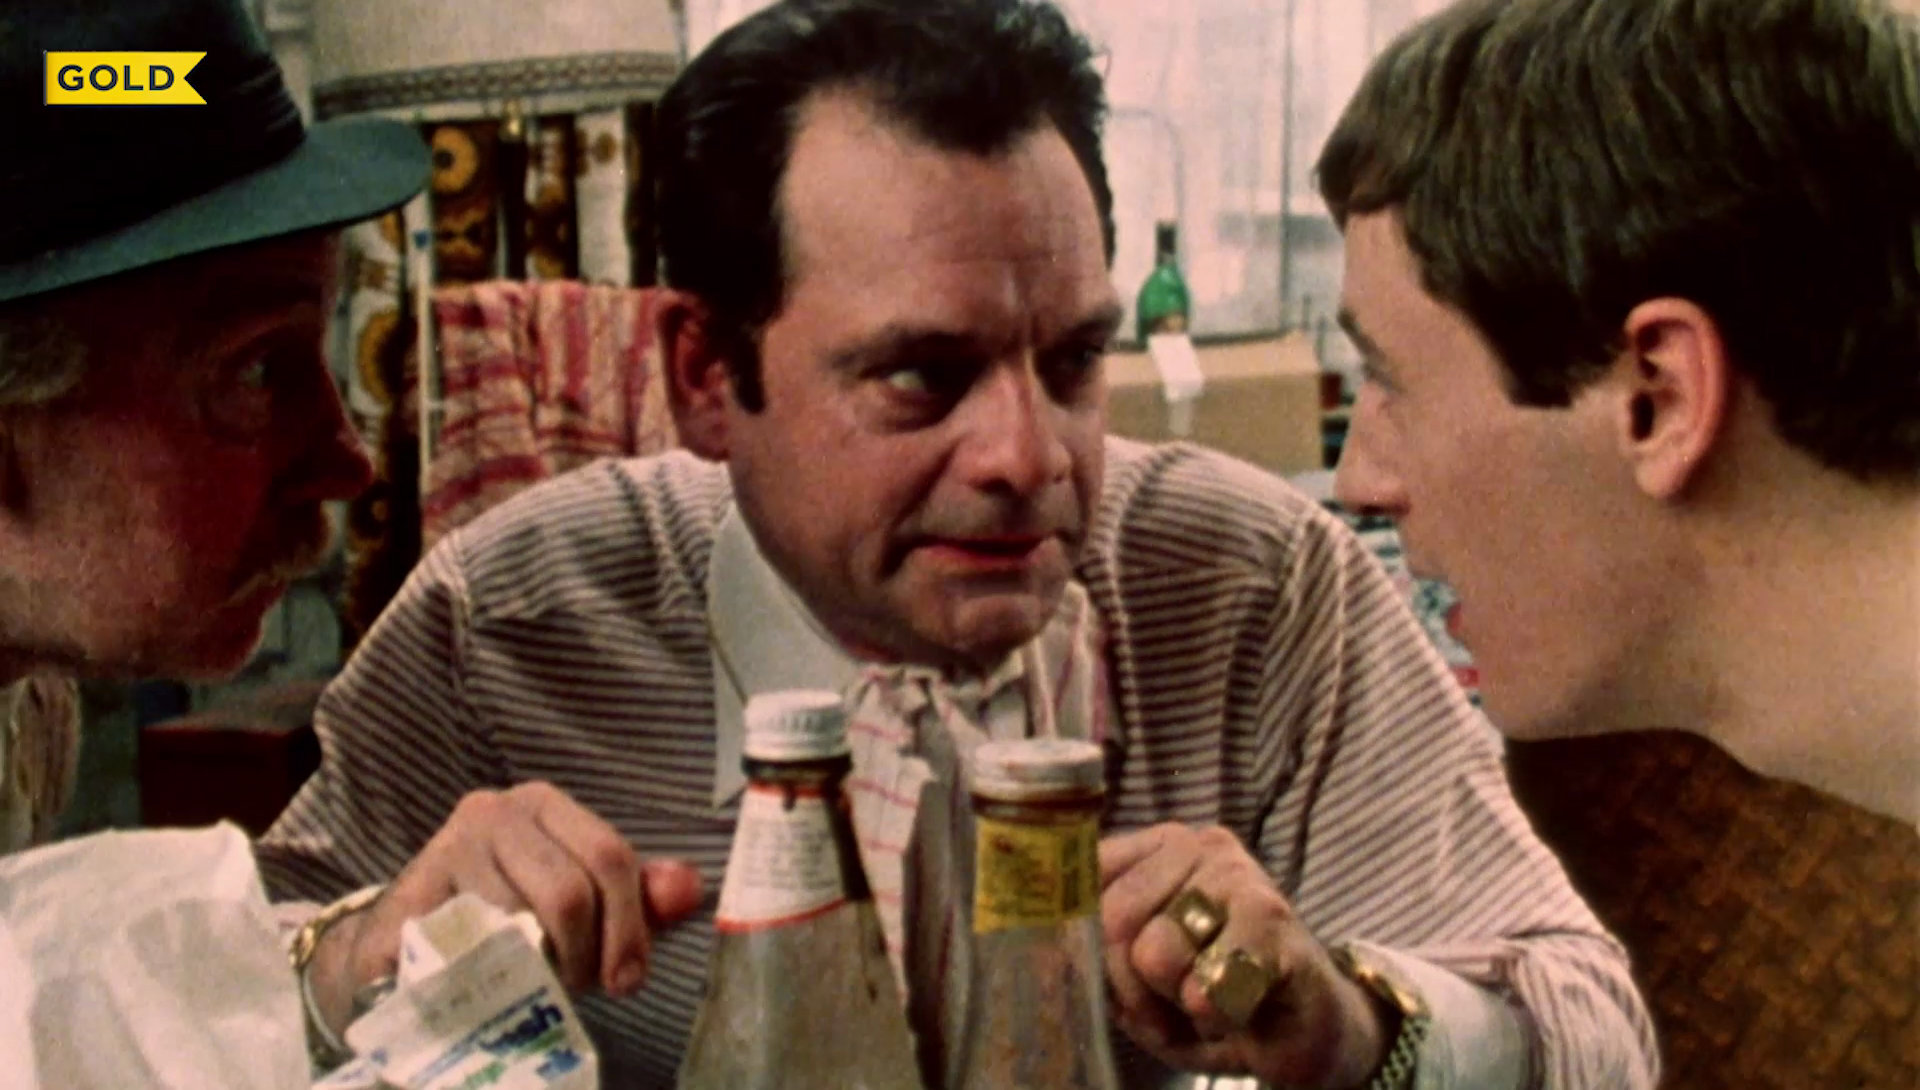 Only Fools and Horses 'lost 1984 episode' to be shown on Gold